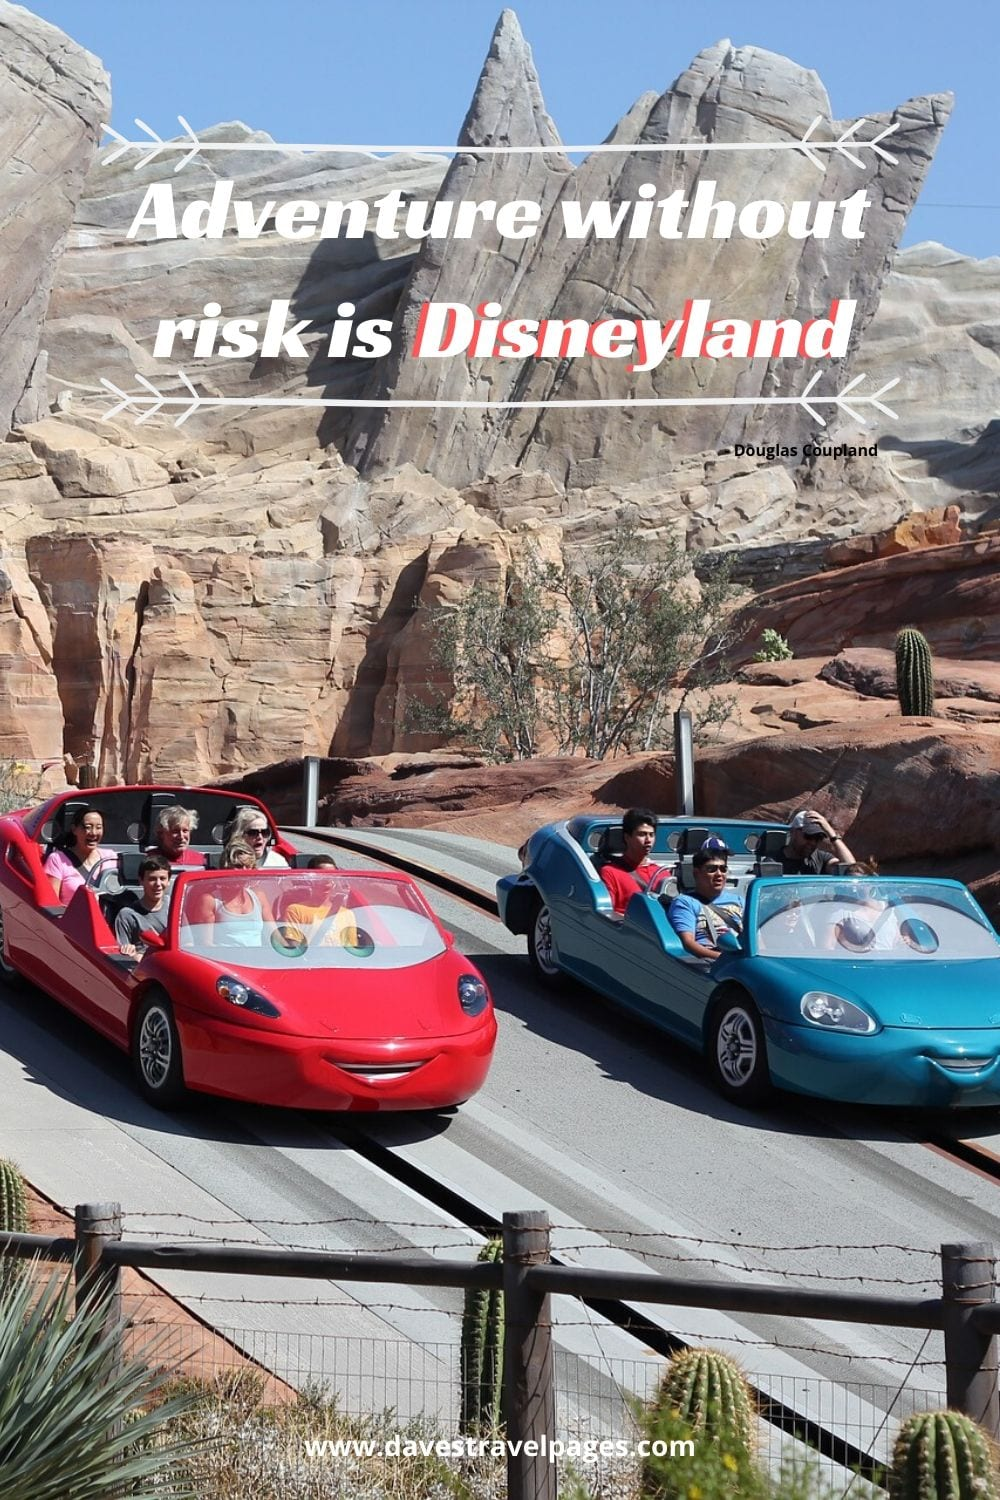 Funny Adventure Quotes - Adventure without risk is Disneyland. - Douglas Coupland